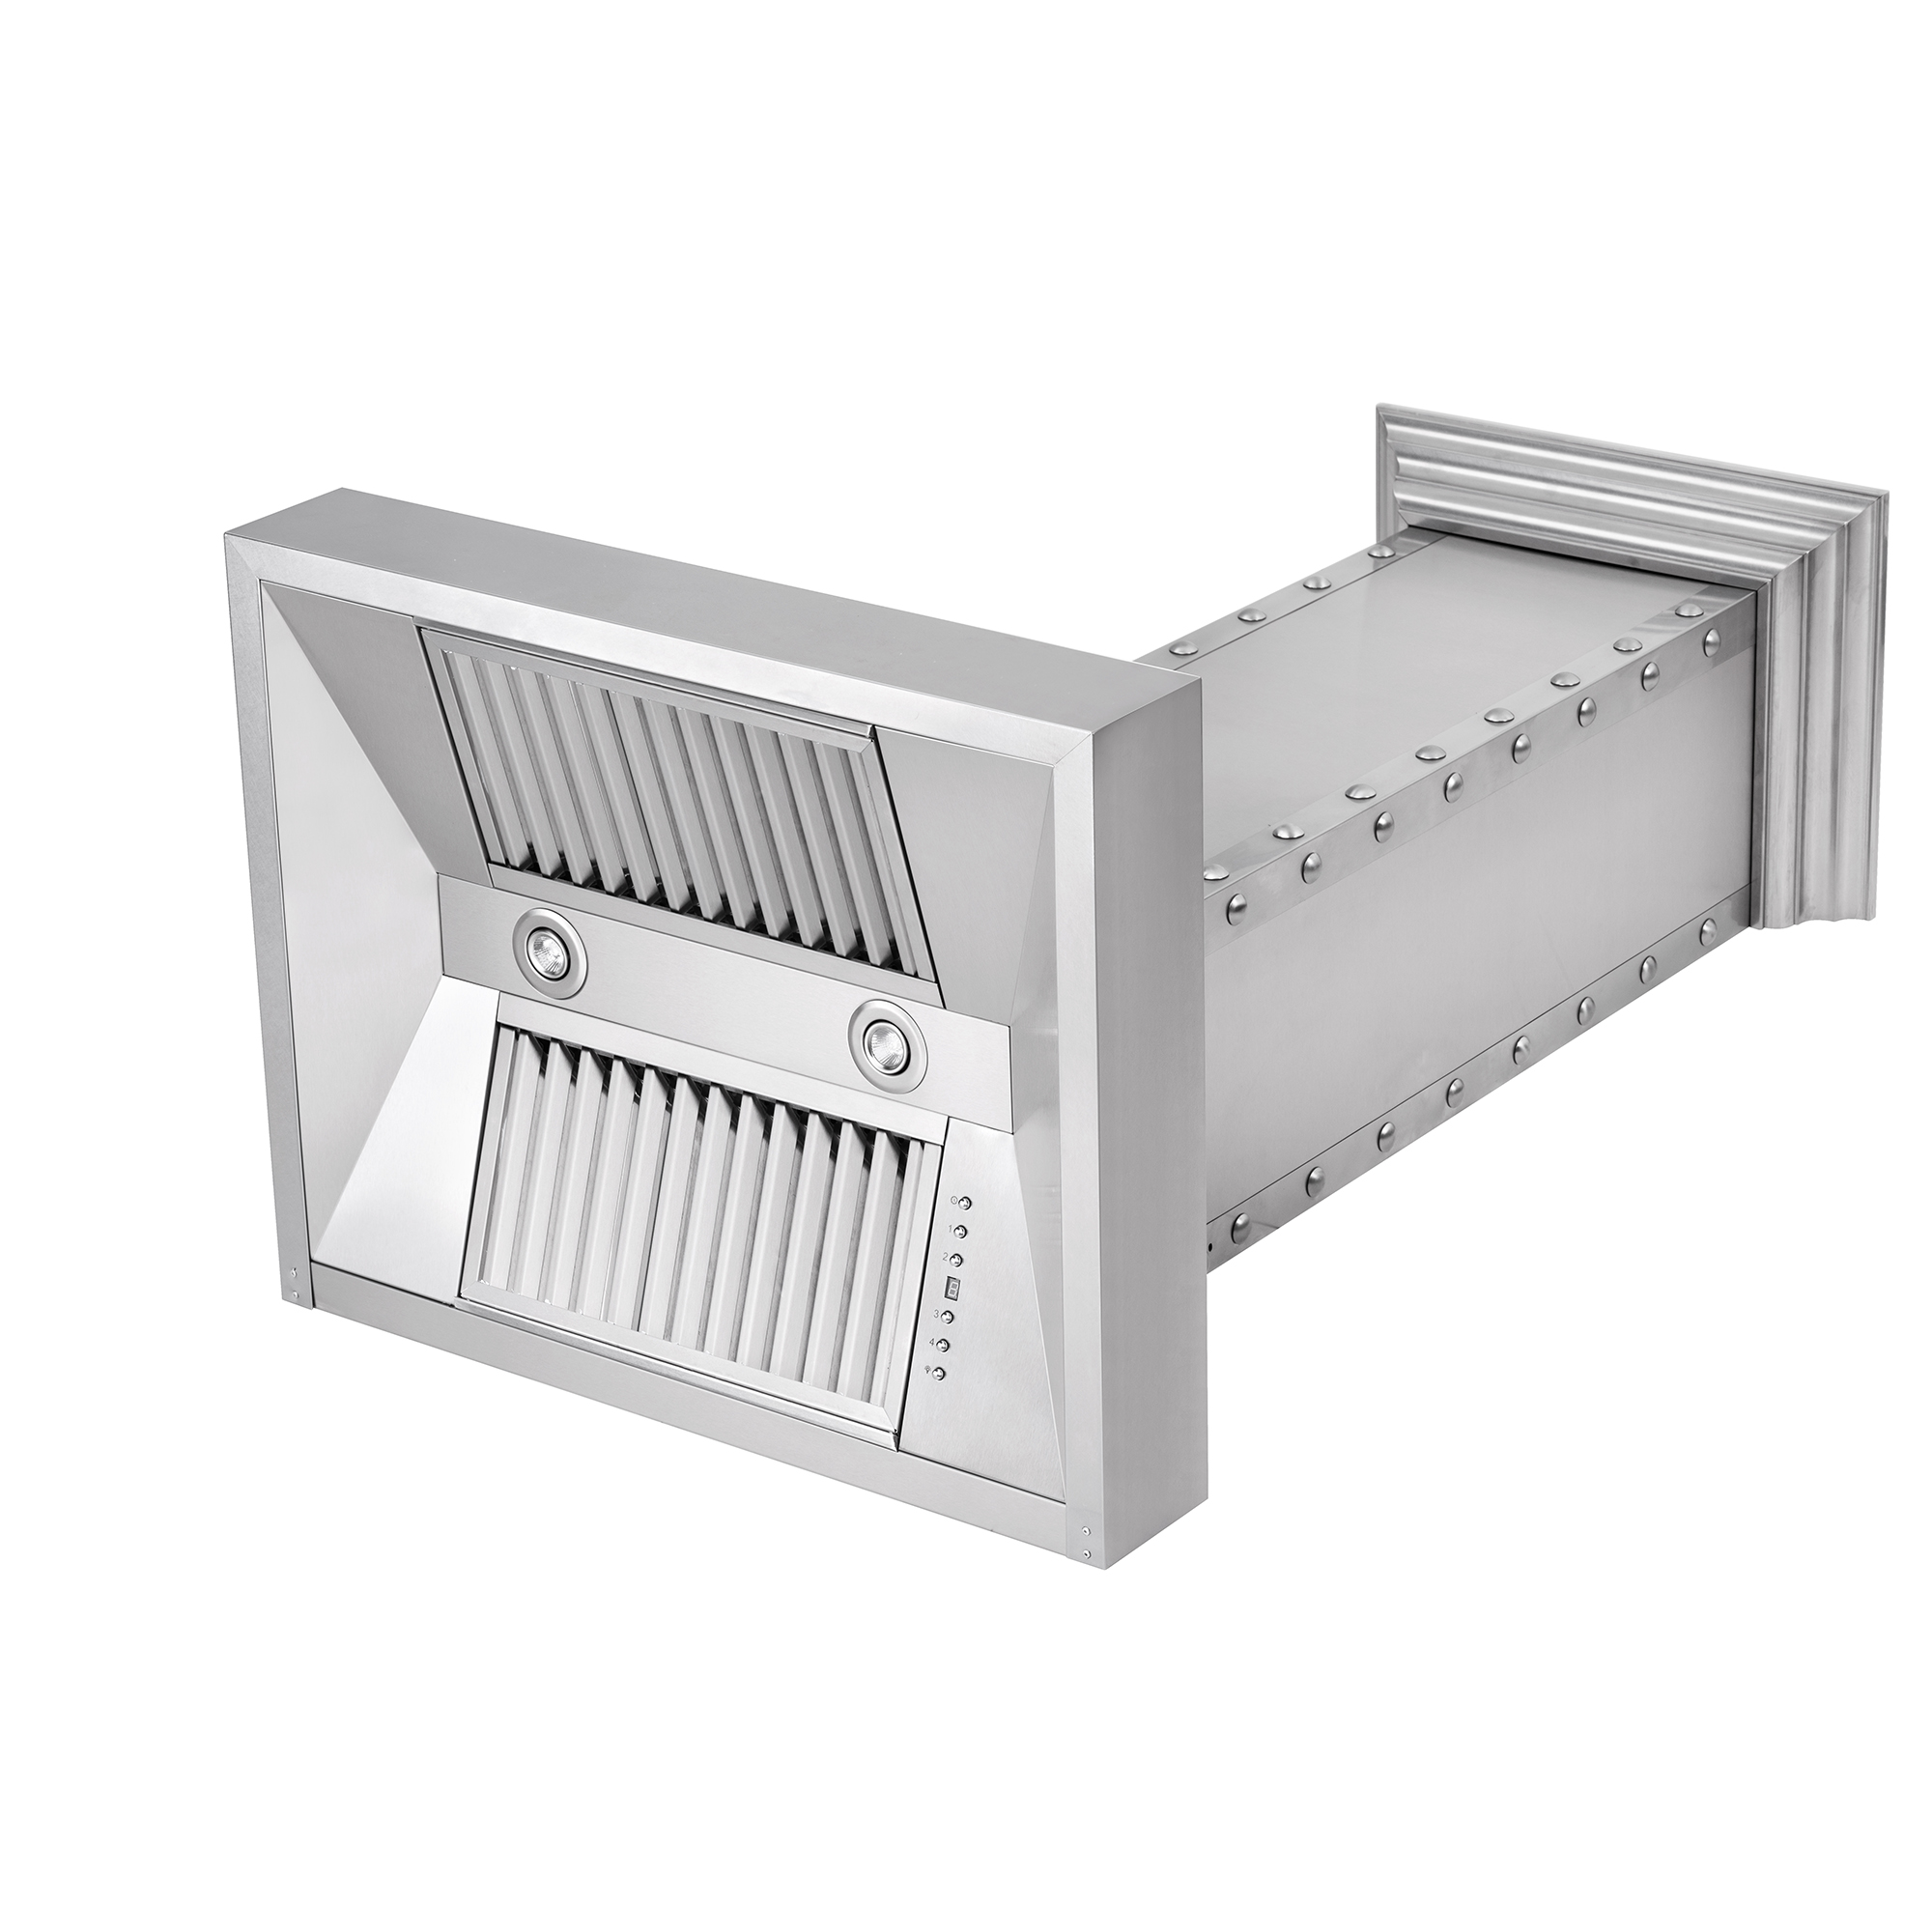 zline-stainless-steel-wall-mounted-range-hood-655-4SSSS-underneath 1.jpg